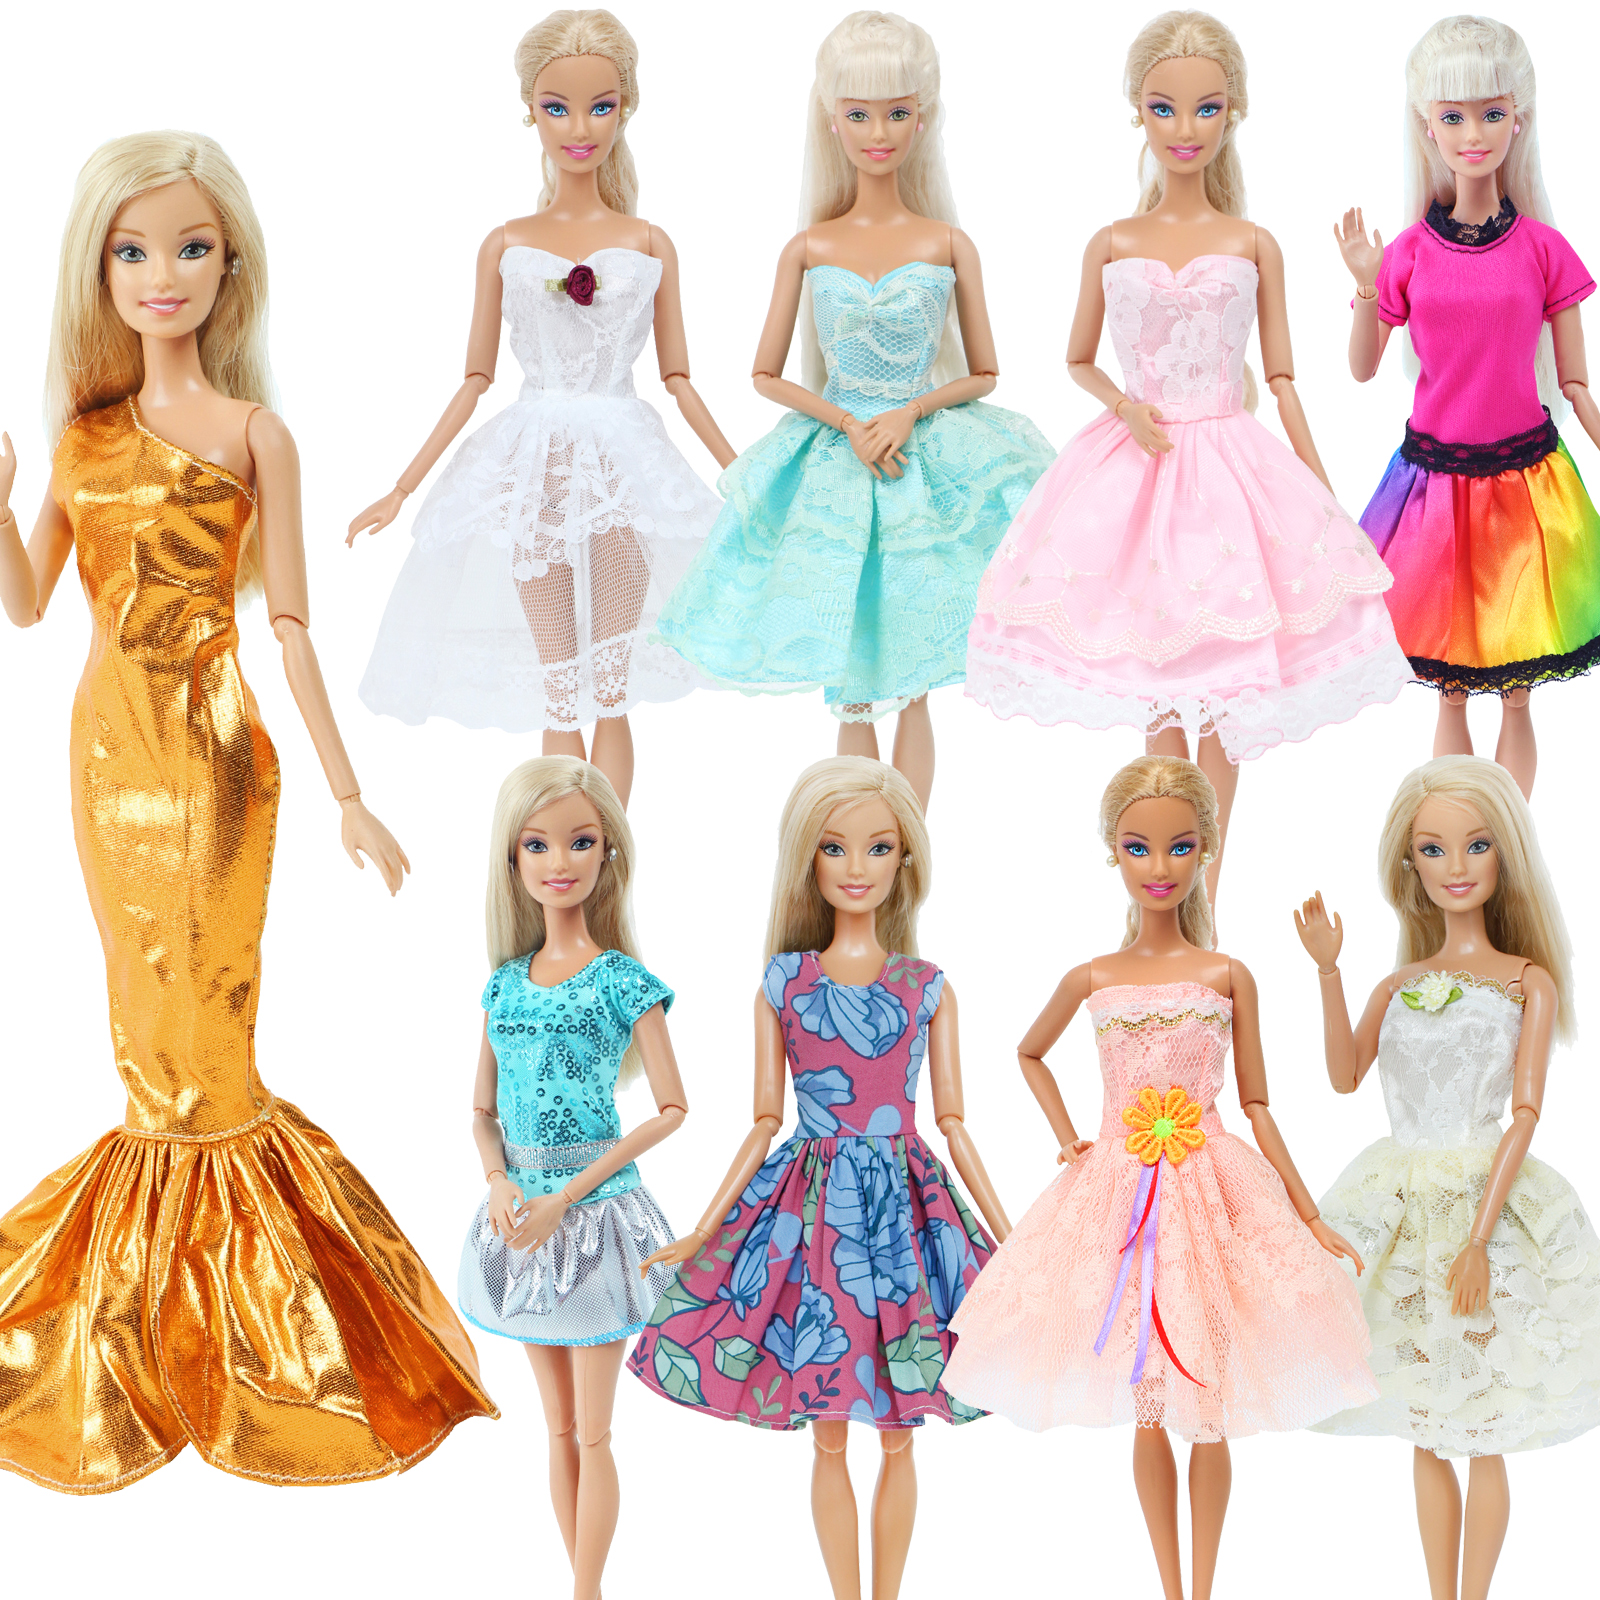 Handmade Fashion Doll Dress For Barbie Doll Lace Sexy Skirt Wedding Party Wear Mini Gown Mixed Style Clothes Accessories DIY Toy